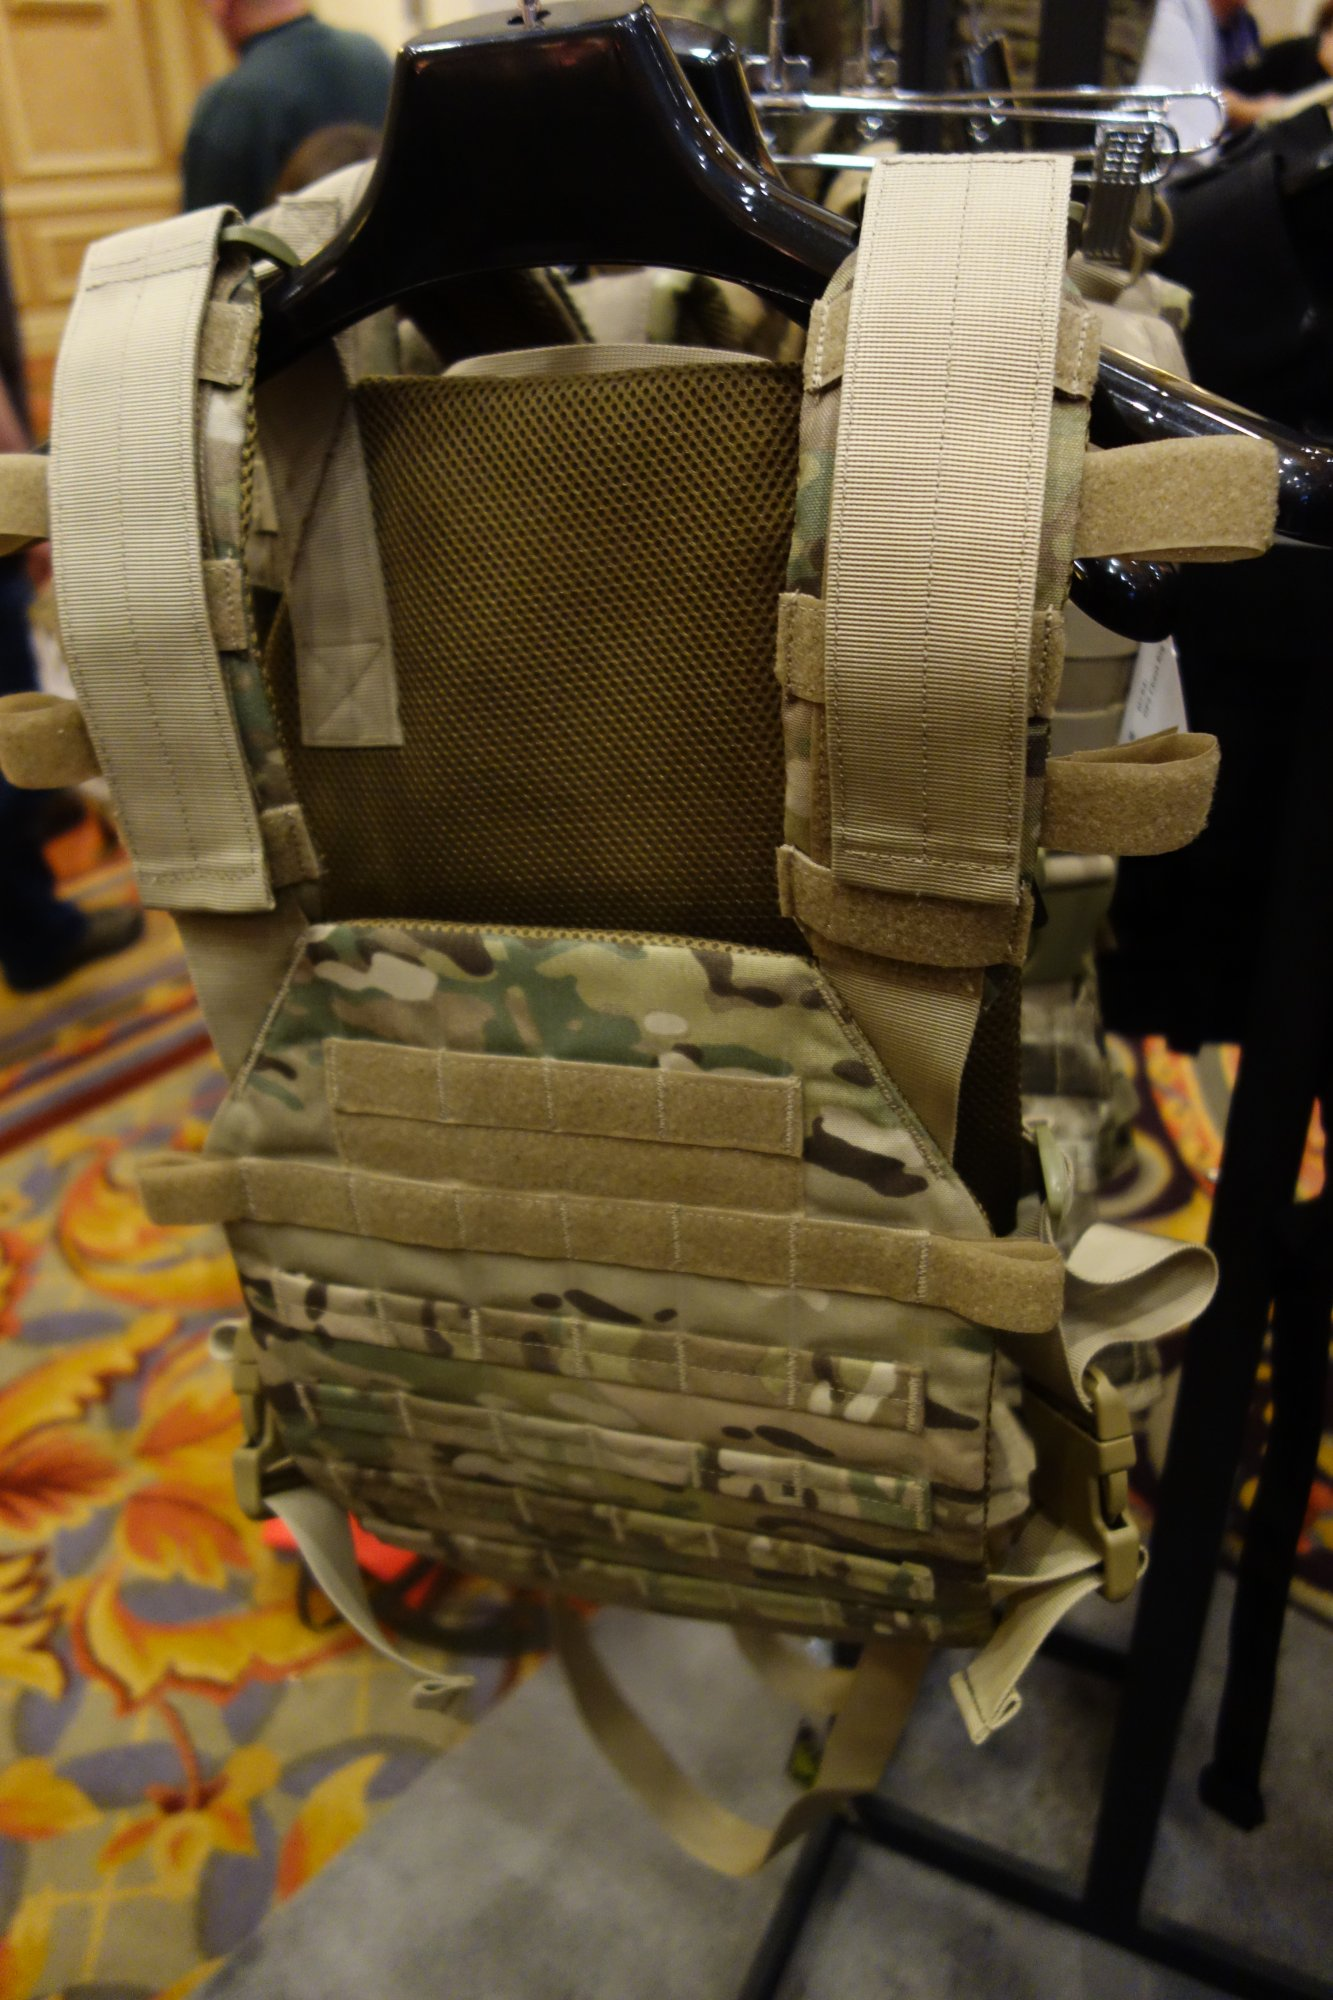 Condor Outdoor Sentry Tactical Armor Plate Carrier Prototype SHOT Show 2014 David Crane DefenseReview.com DR 1 Condor Sentry Lightweight Tactical Armor Plate Carrier Prototype: Lightweight Minimalist/Lo Pro/Lo Vis Tactical Body Armor/Tactical Vest with Fast Adjustable Shoulder Straps and Side Straps